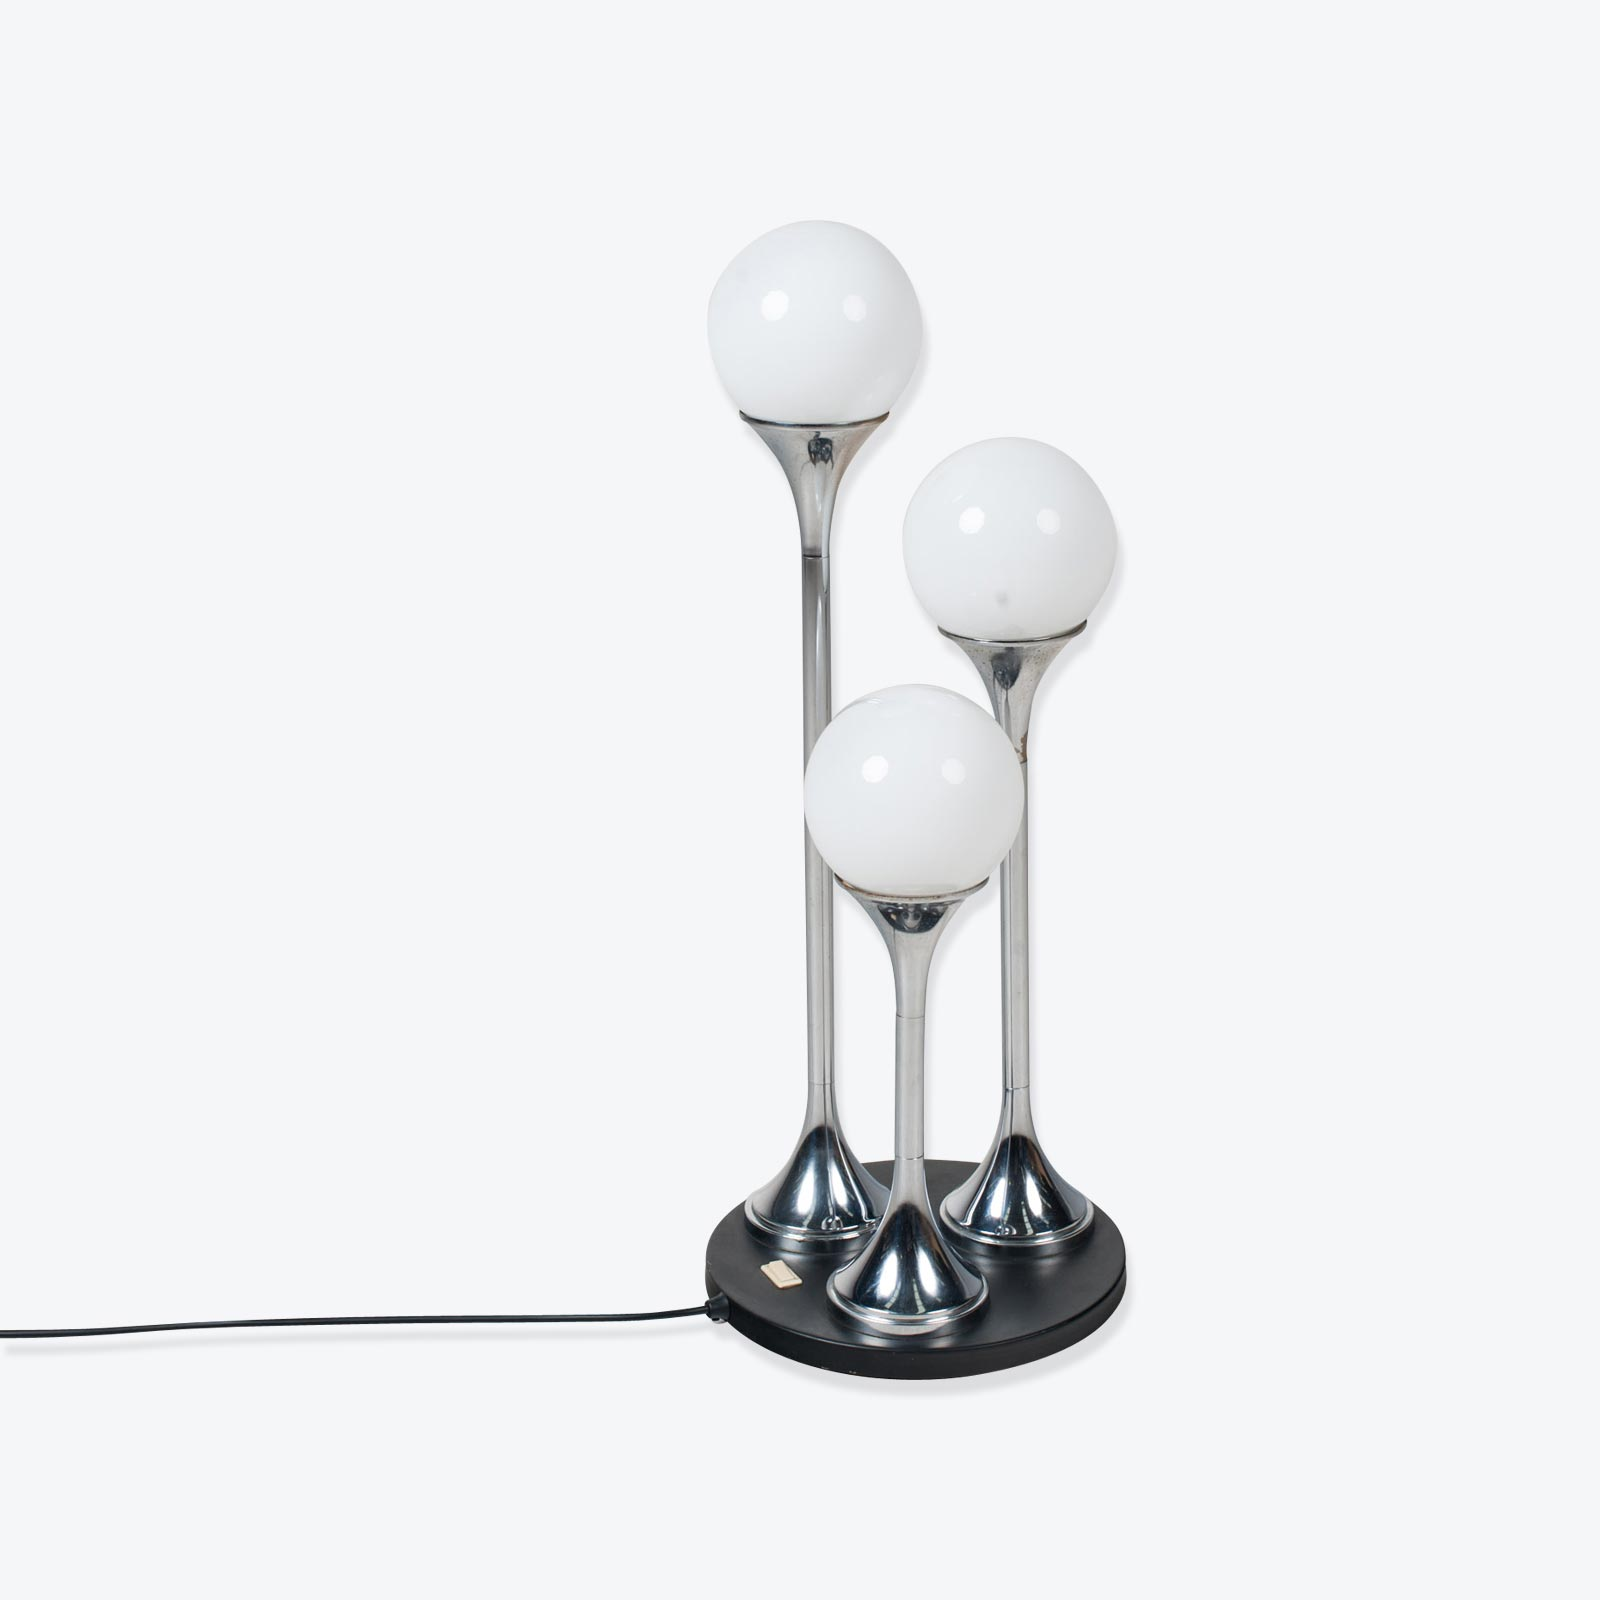 Chrome Floor Lamp By Targetti Sankey 1960s Italy 01